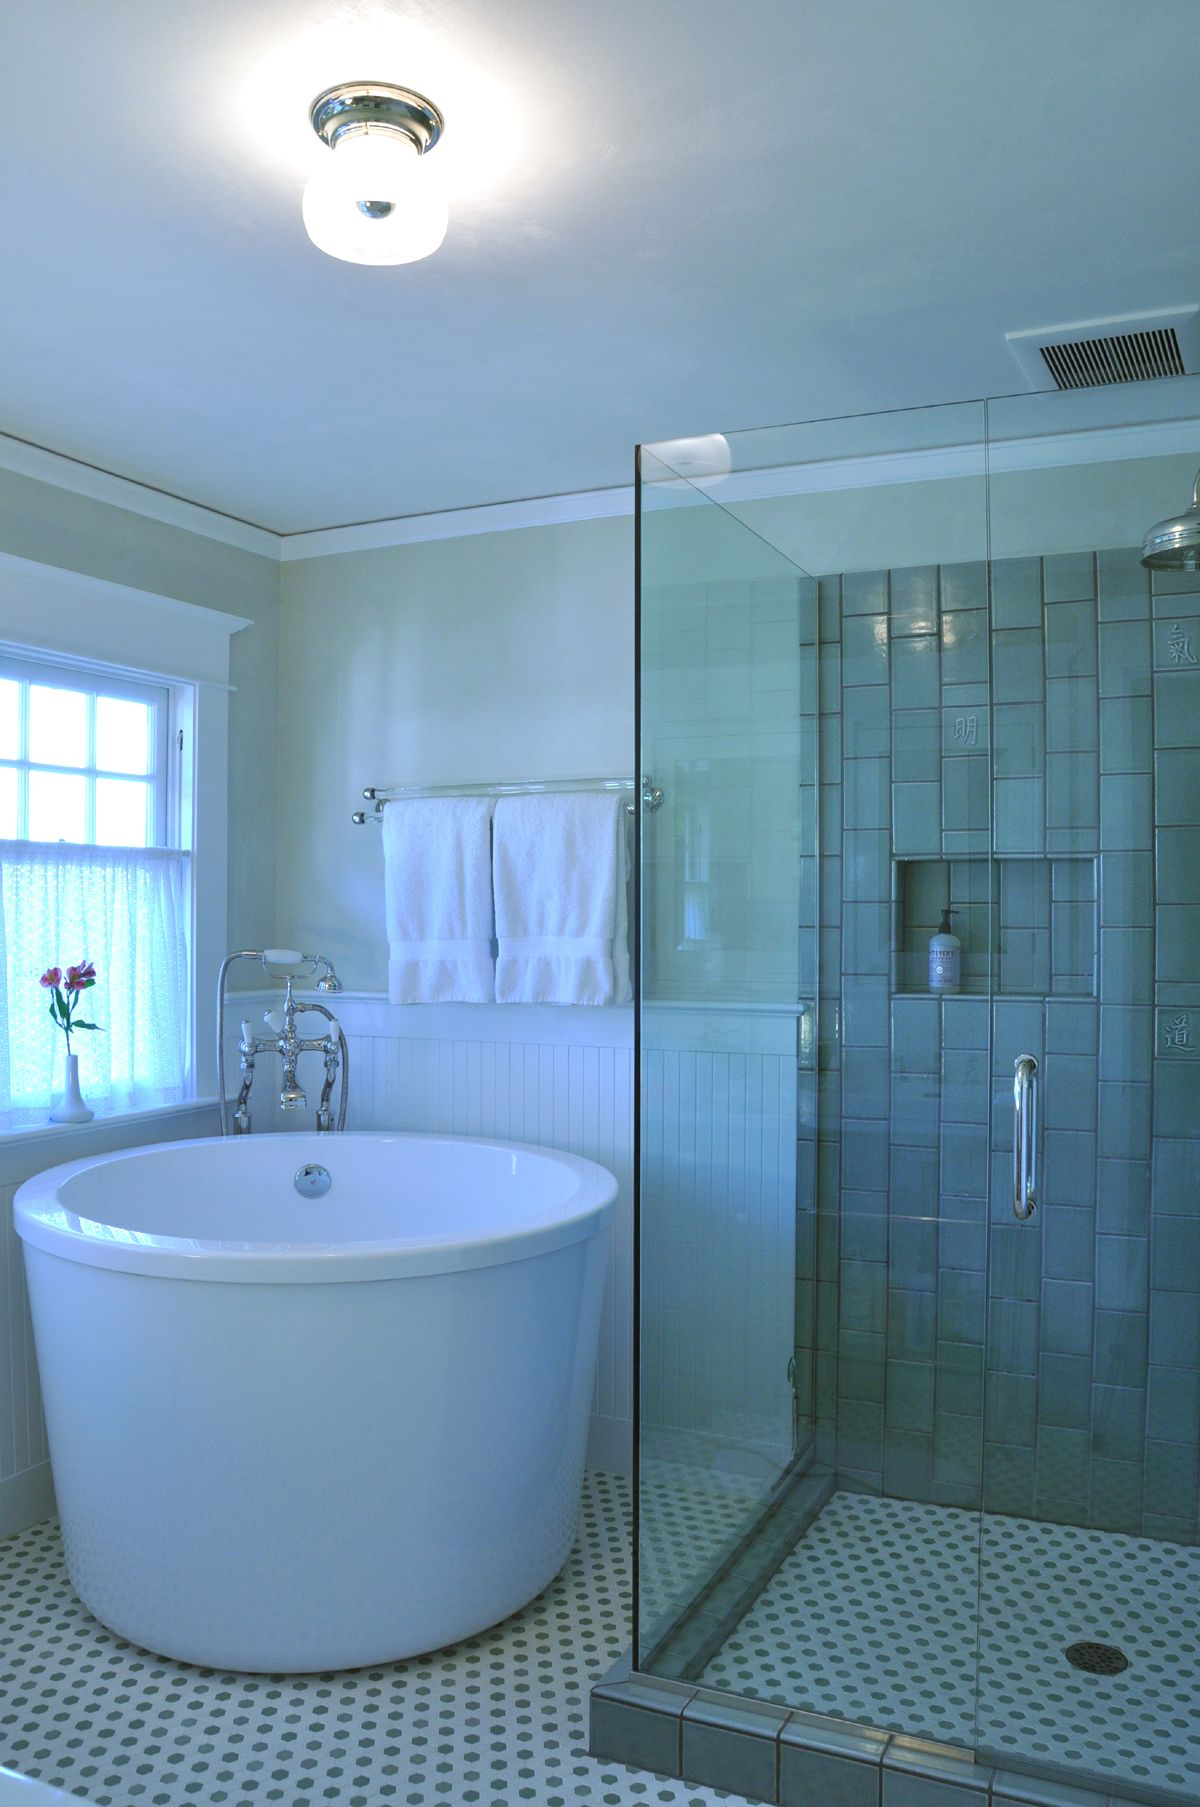 Japanese Soaking Tub In Master Bathroom For Recent Remodel Project Delectable Corner Soaking Tubs For Small Bathrooms Review